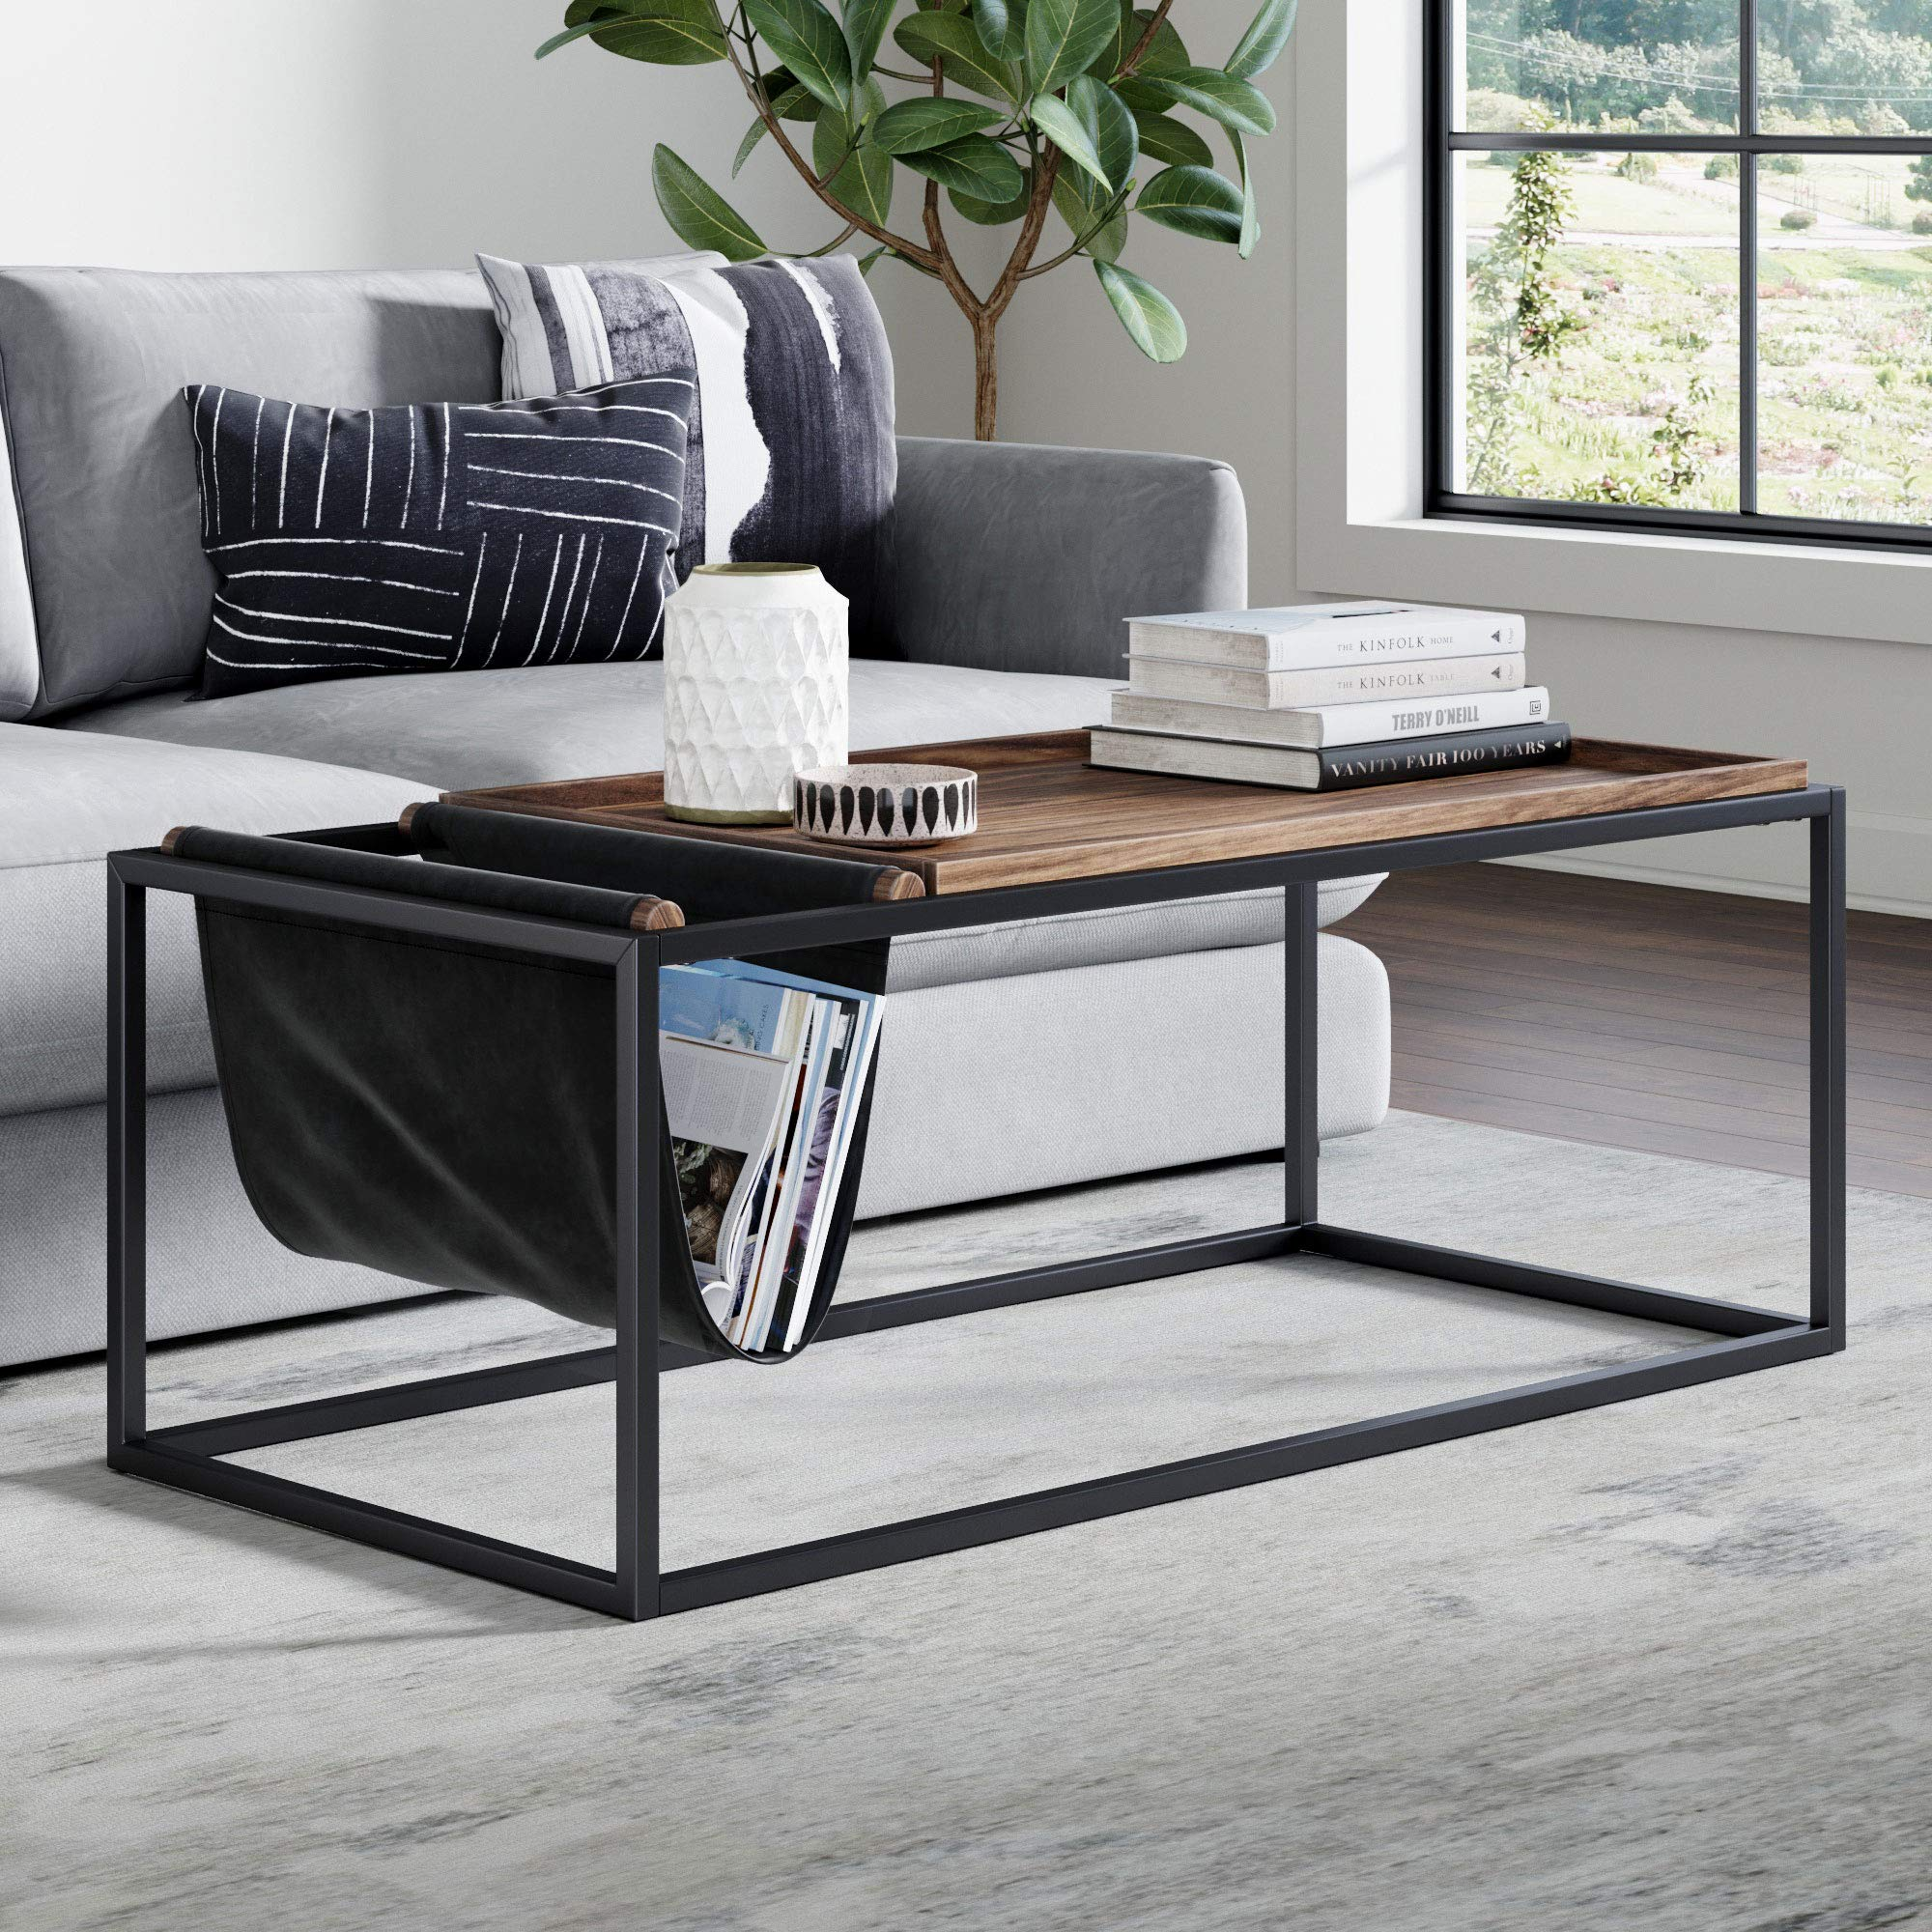 Nathan James Felix Modern Coffee Table Wood Tray Top, Vegan Leather Storage, and Industrial Matte Steel Rectangle Metal Frame, Nutmeg/Black by Nathan James